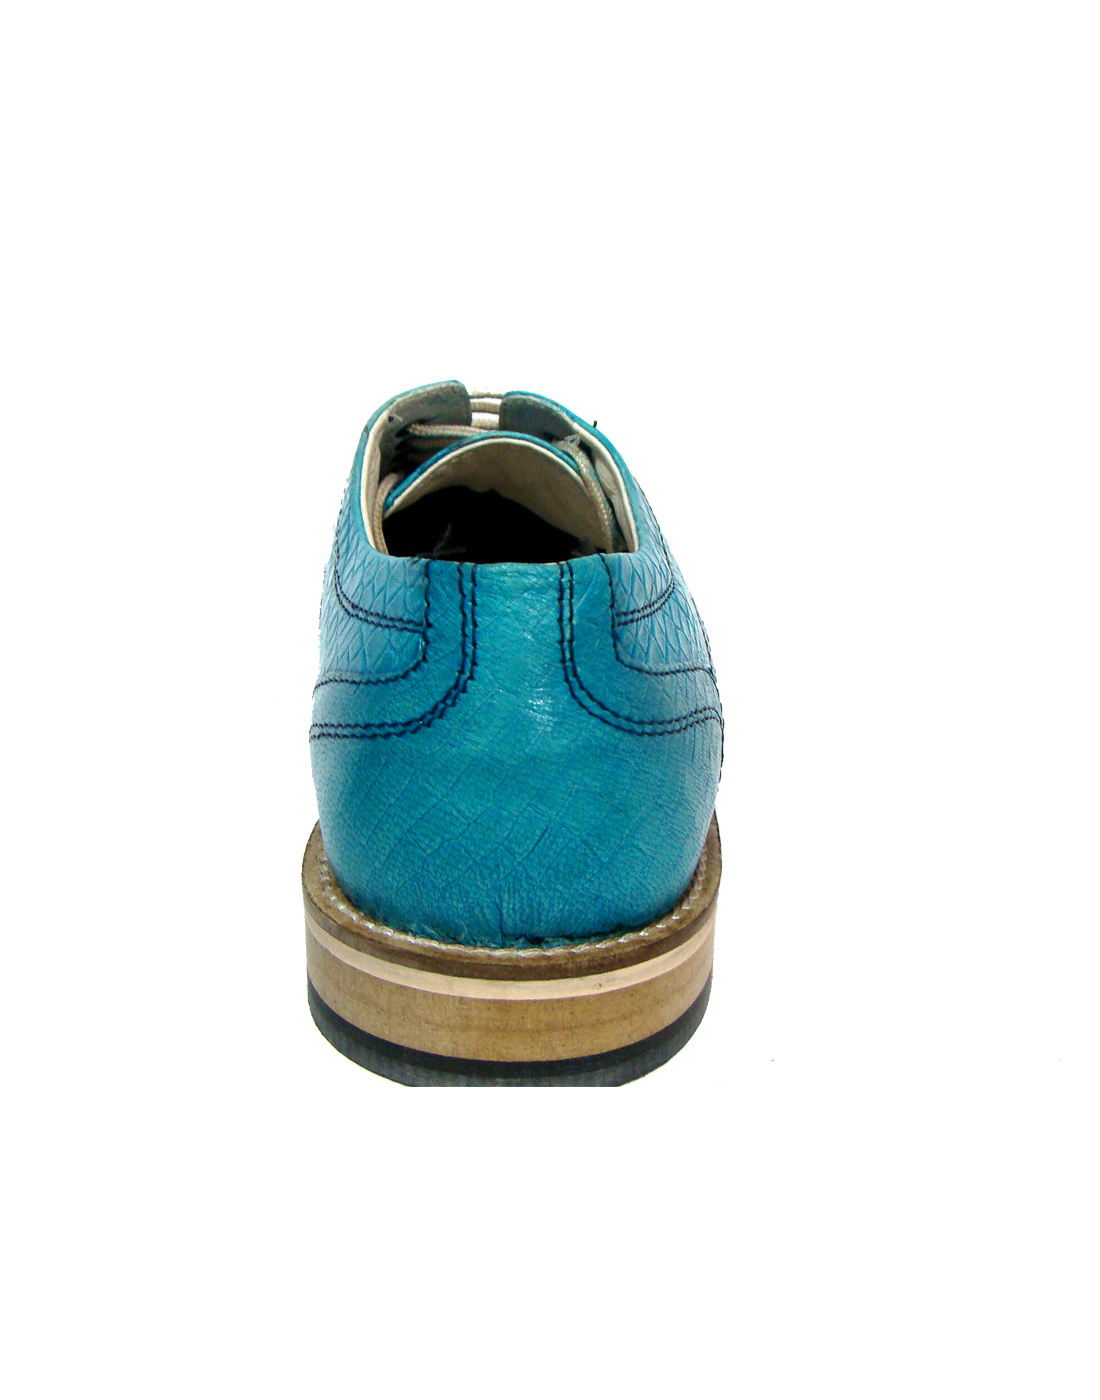 factory authentic fbb8e 2c330 TURQUOISE BLUE DERBY SHOES WITH TWO-TONE HAND FINISH ALLIGATOR LEATHER  ARTICLE-HU167